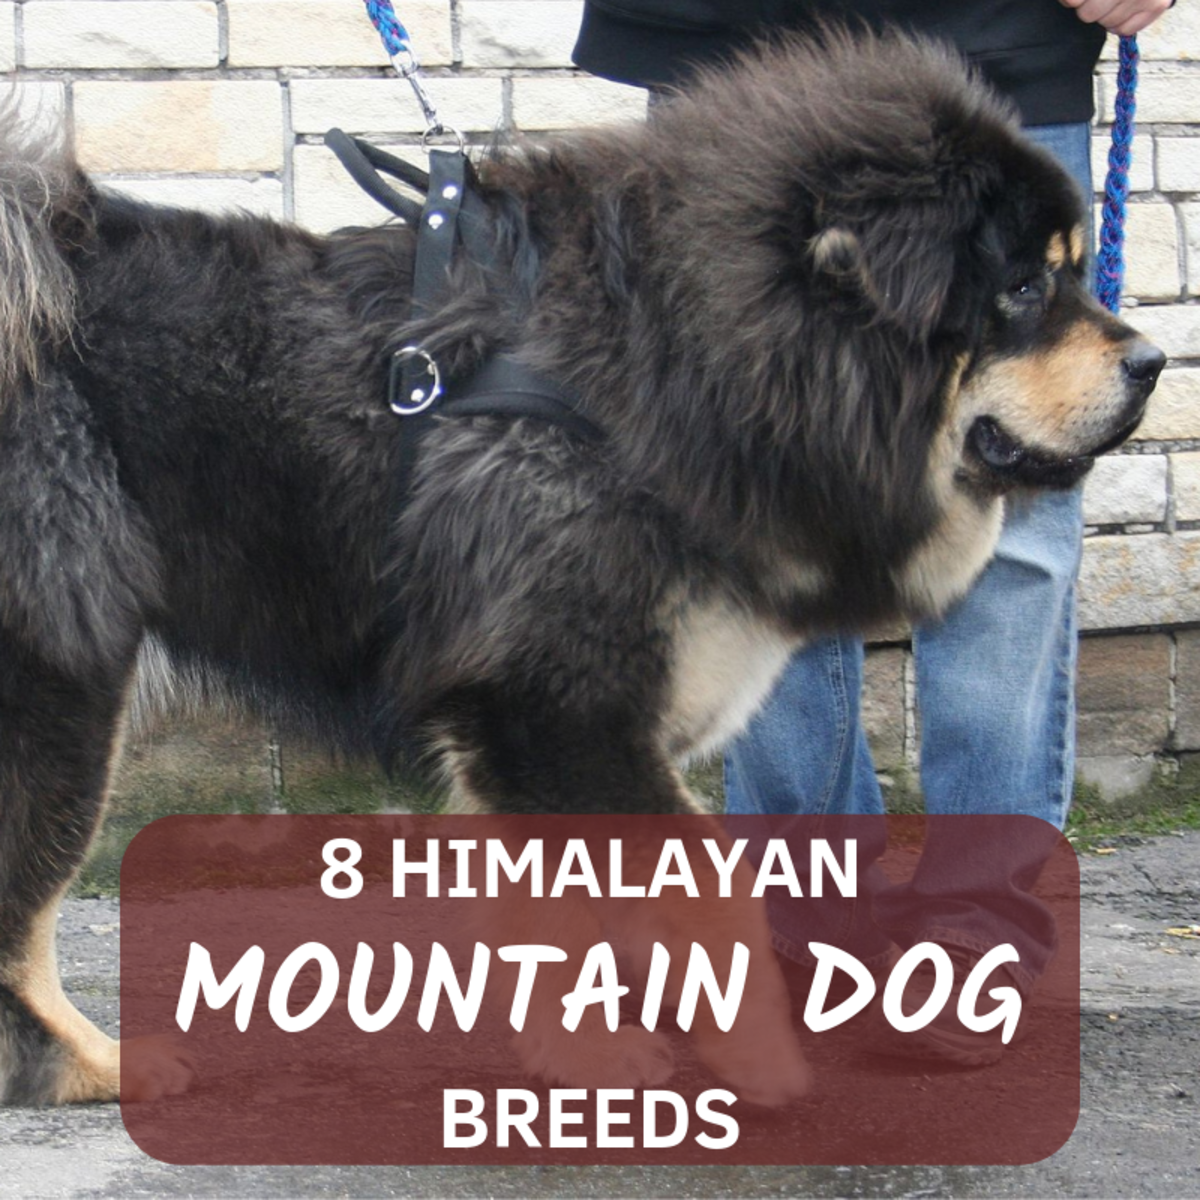 8 Breeds of Himalayan Mountain Dogs: Sheepdogs, Mastiffs, and More